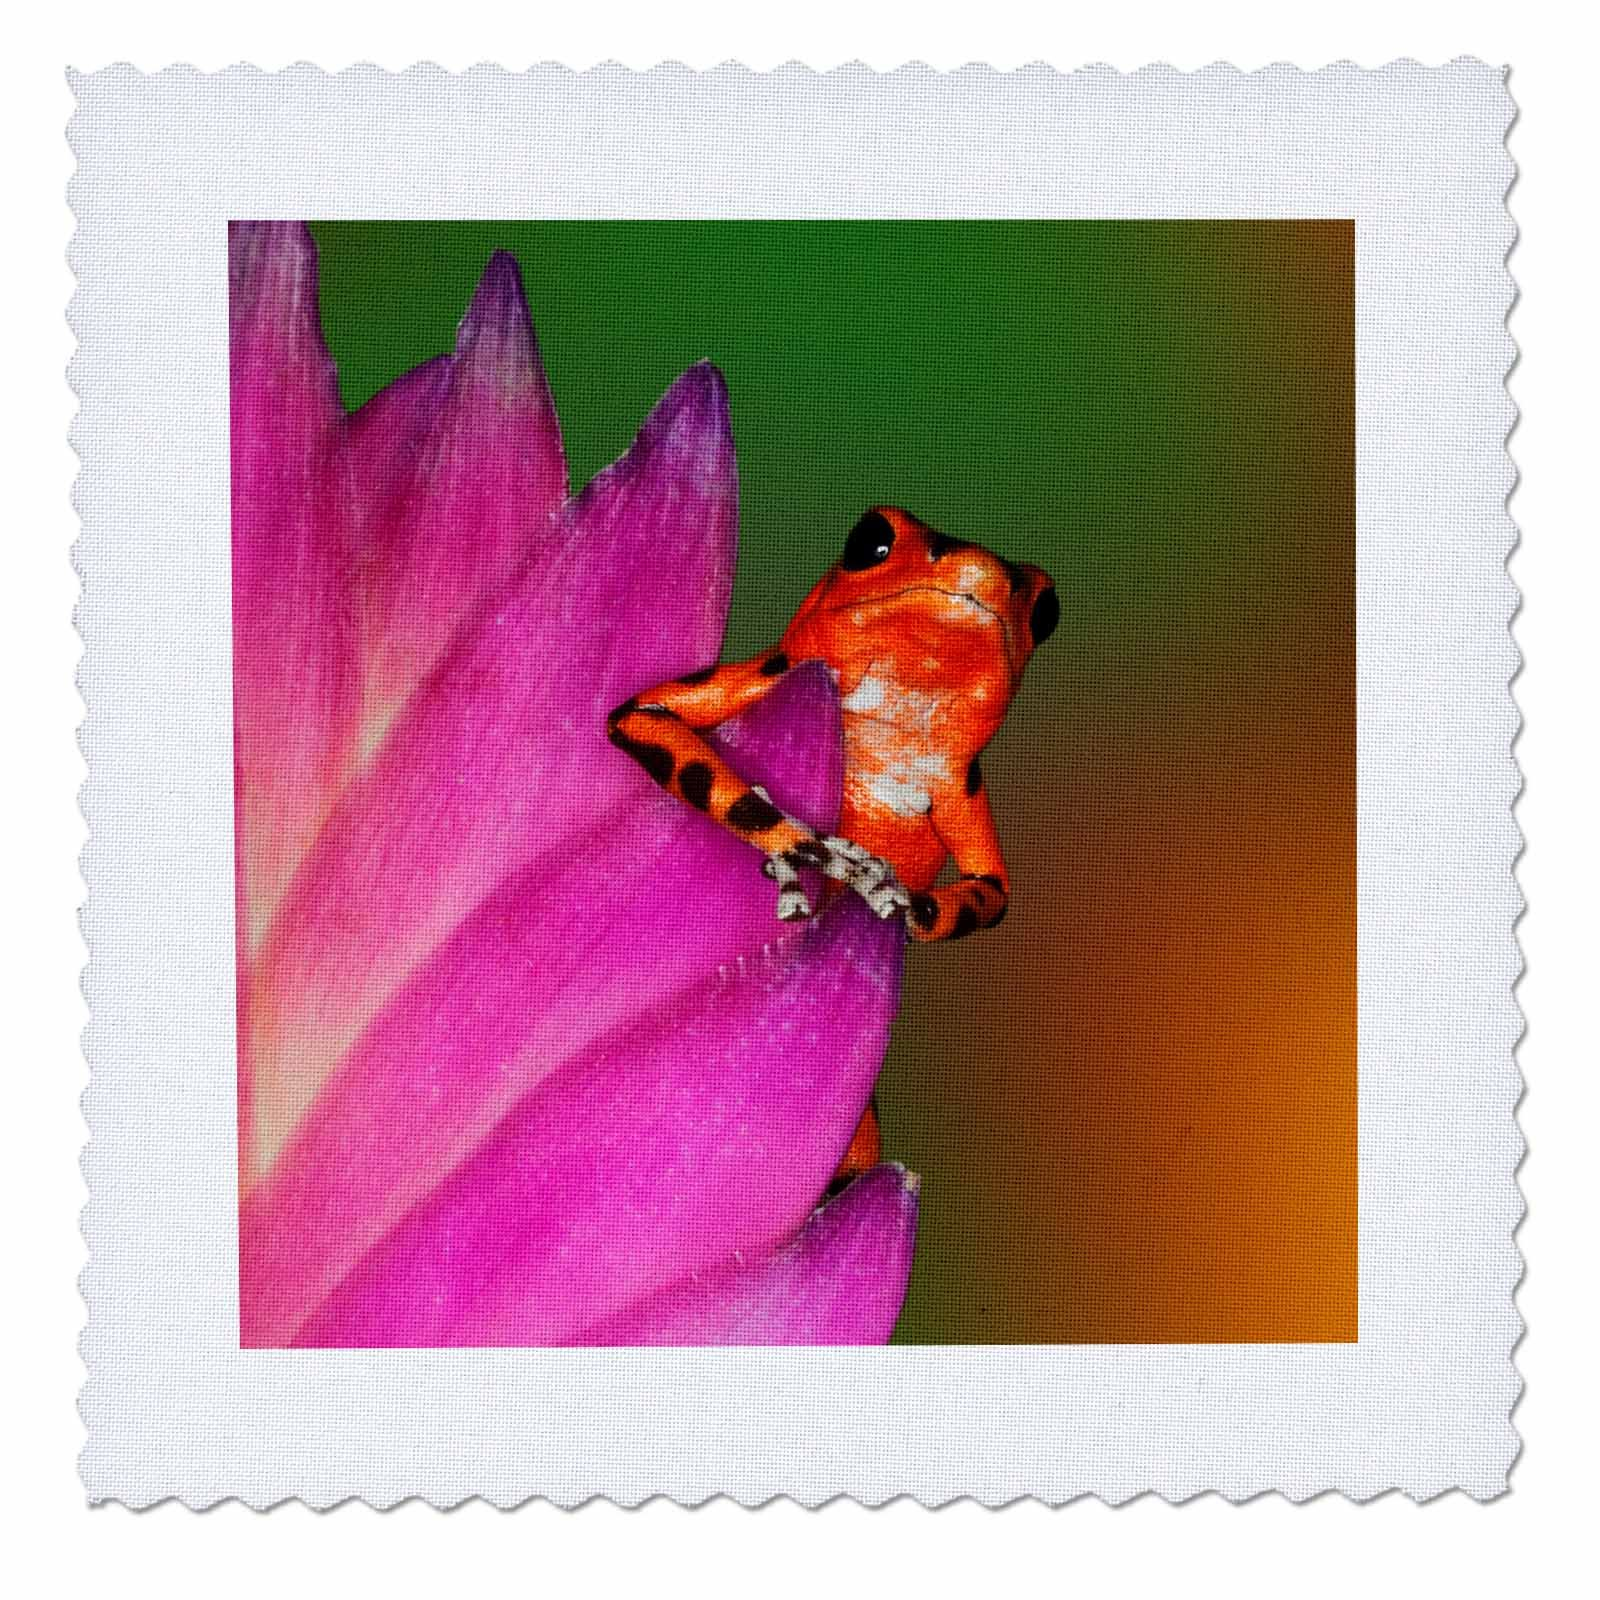 3dRose Danita Delimont - Frogs - South America, Panama. Strawberry poison dart frog on bromeliad flower - 20x20 inch quilt square (qs_278320_8)